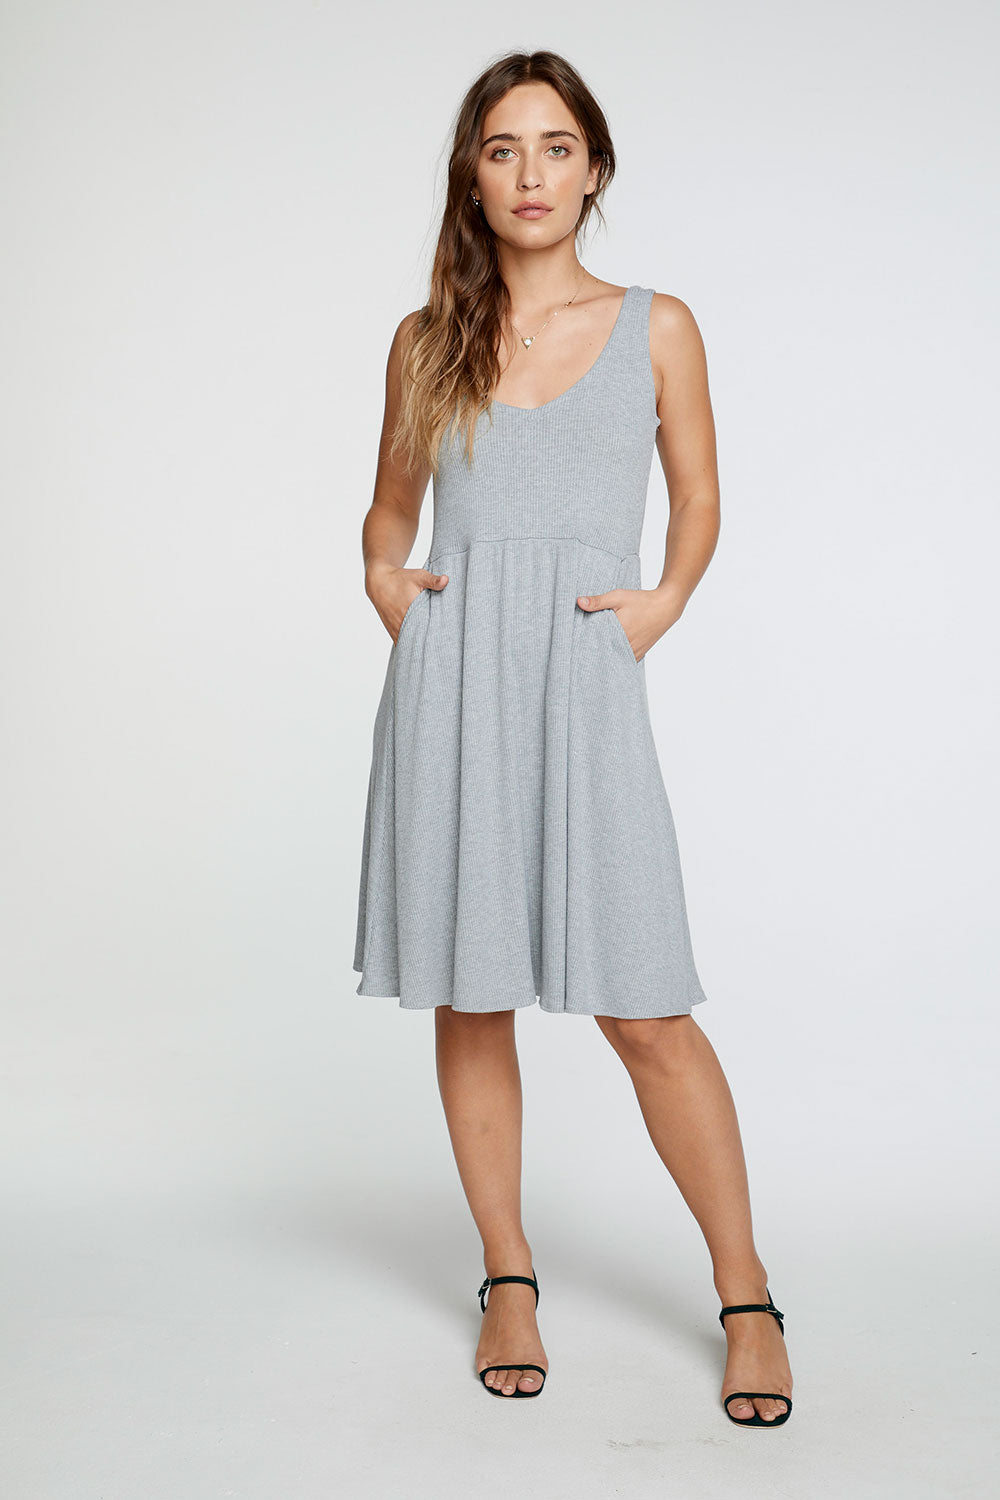 Cozy Rib Double V Tank Midi Dress in Heather Grey WOMENS chaserbrand4.myshopify.com